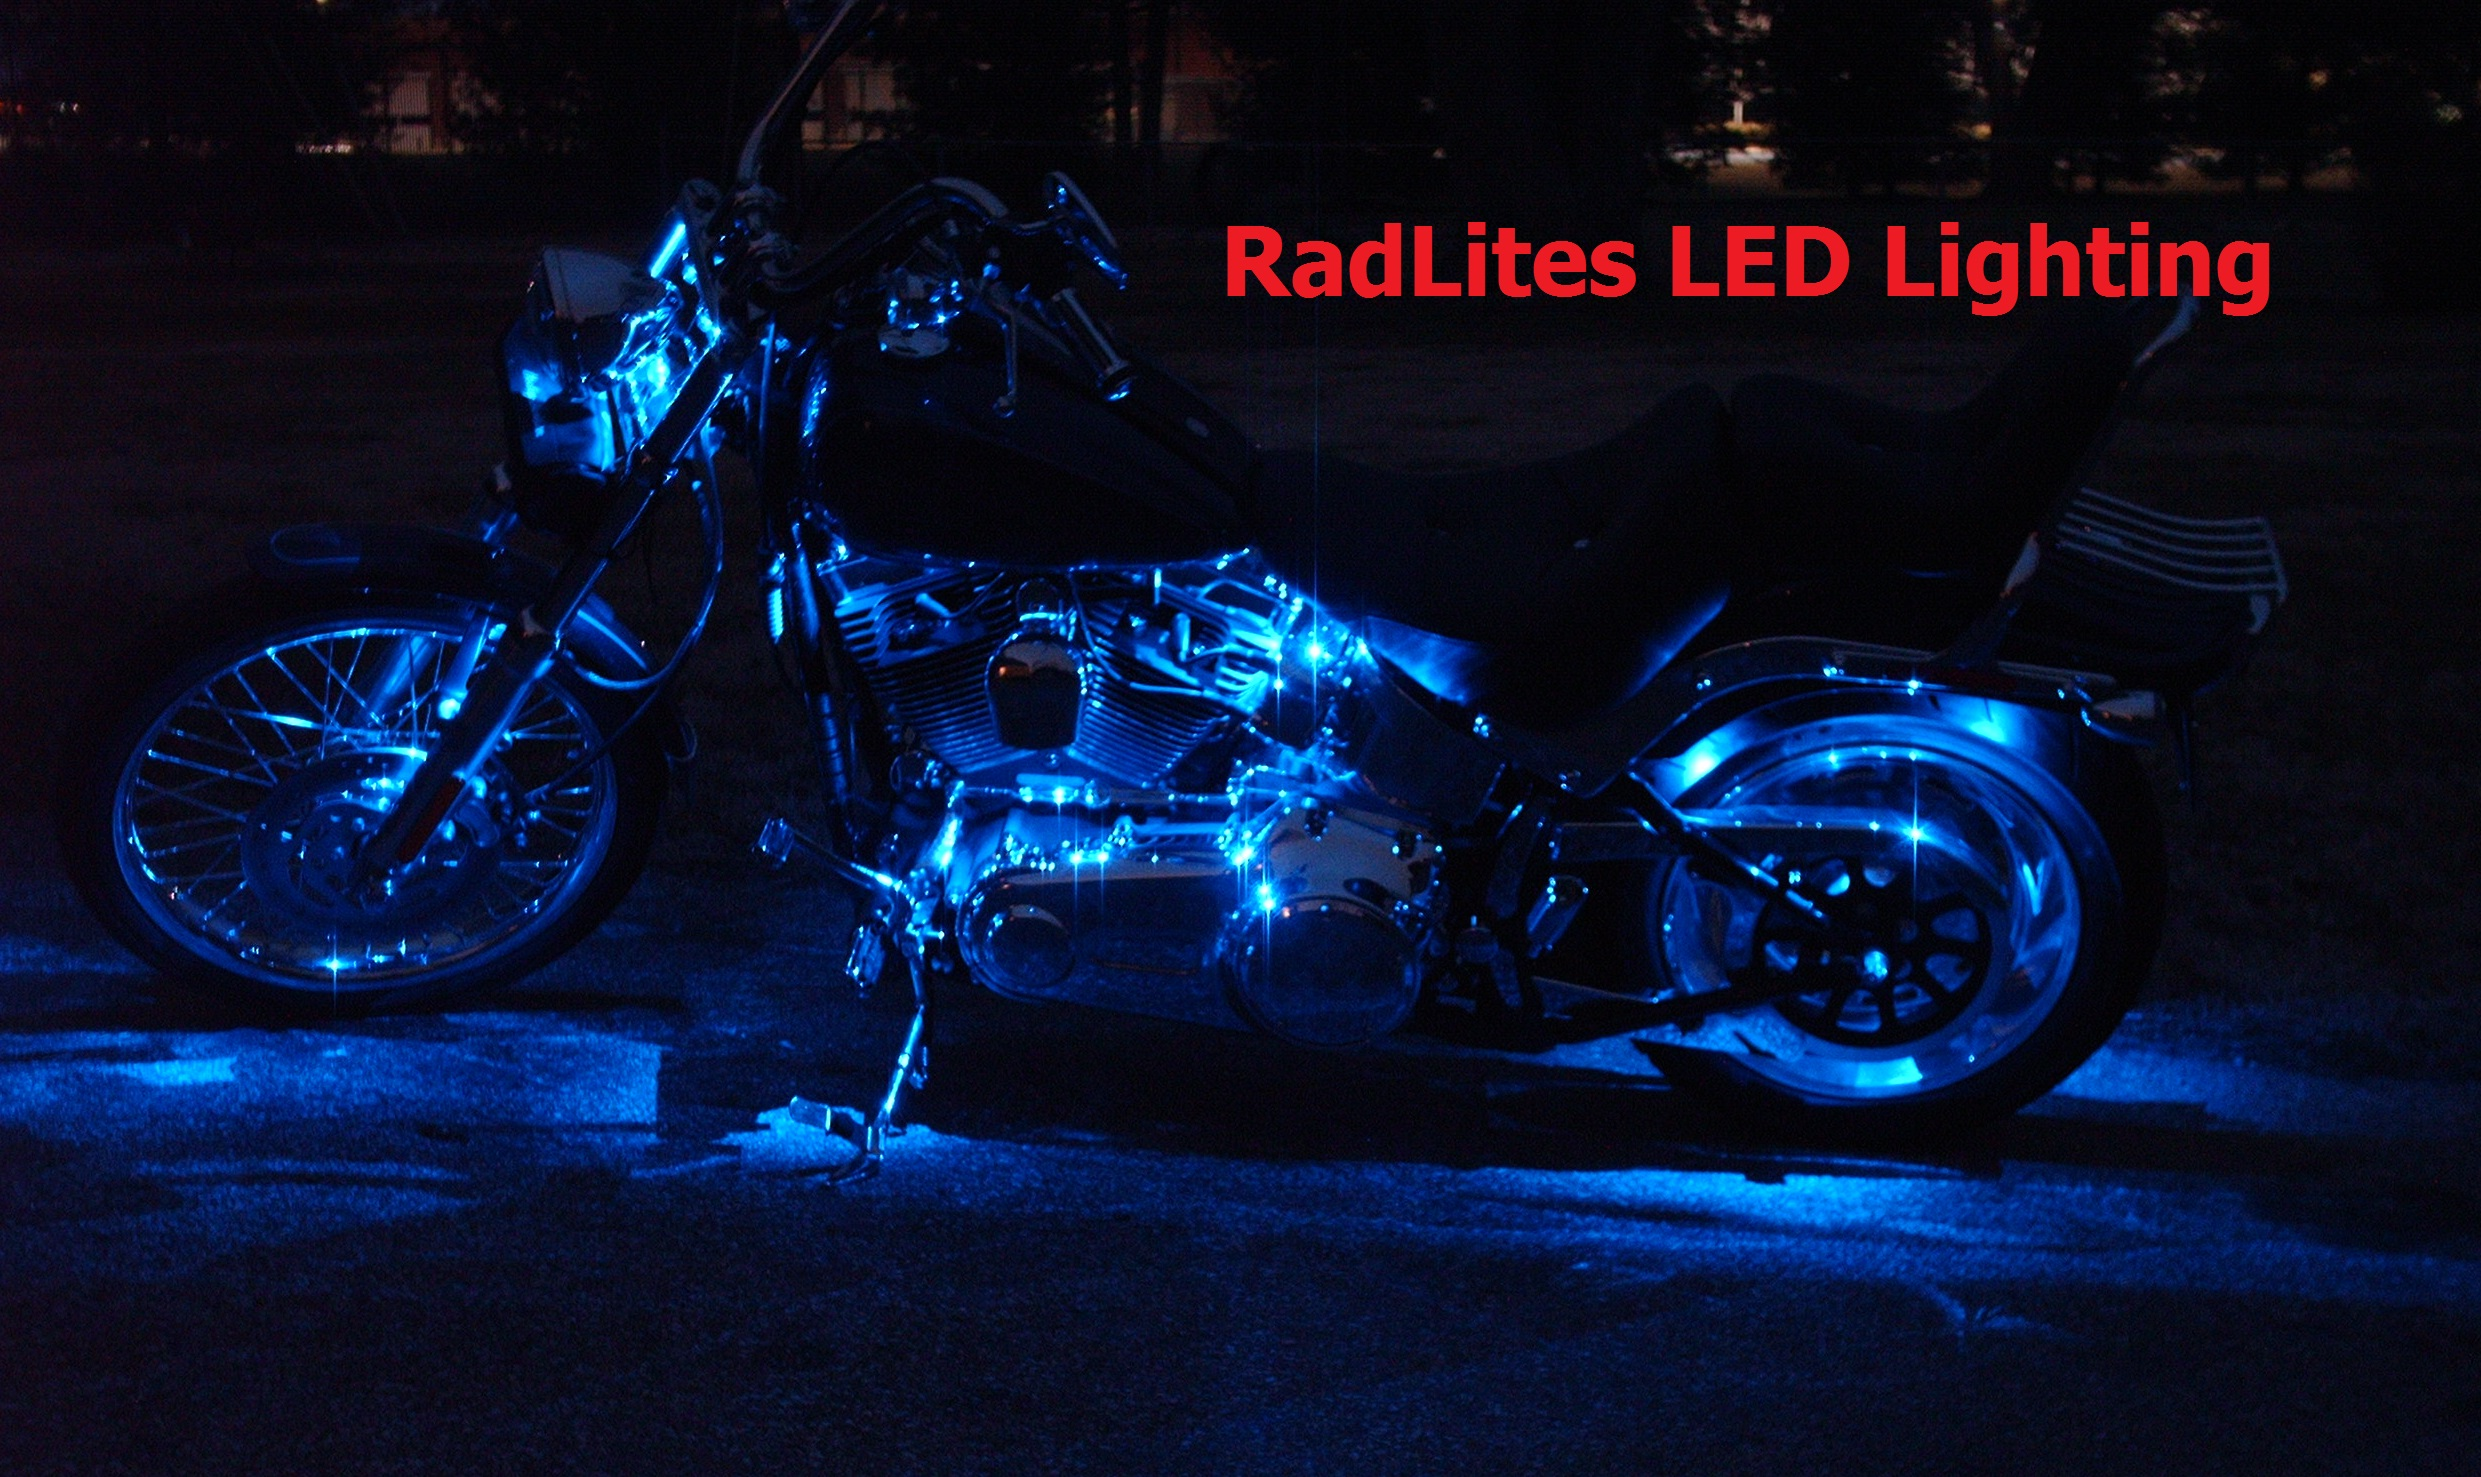 Harley_Davidson_Cruiser_Touring_Bike_LEDu0027s_Blue & Harley Davidson Engine Lighting azcodes.com